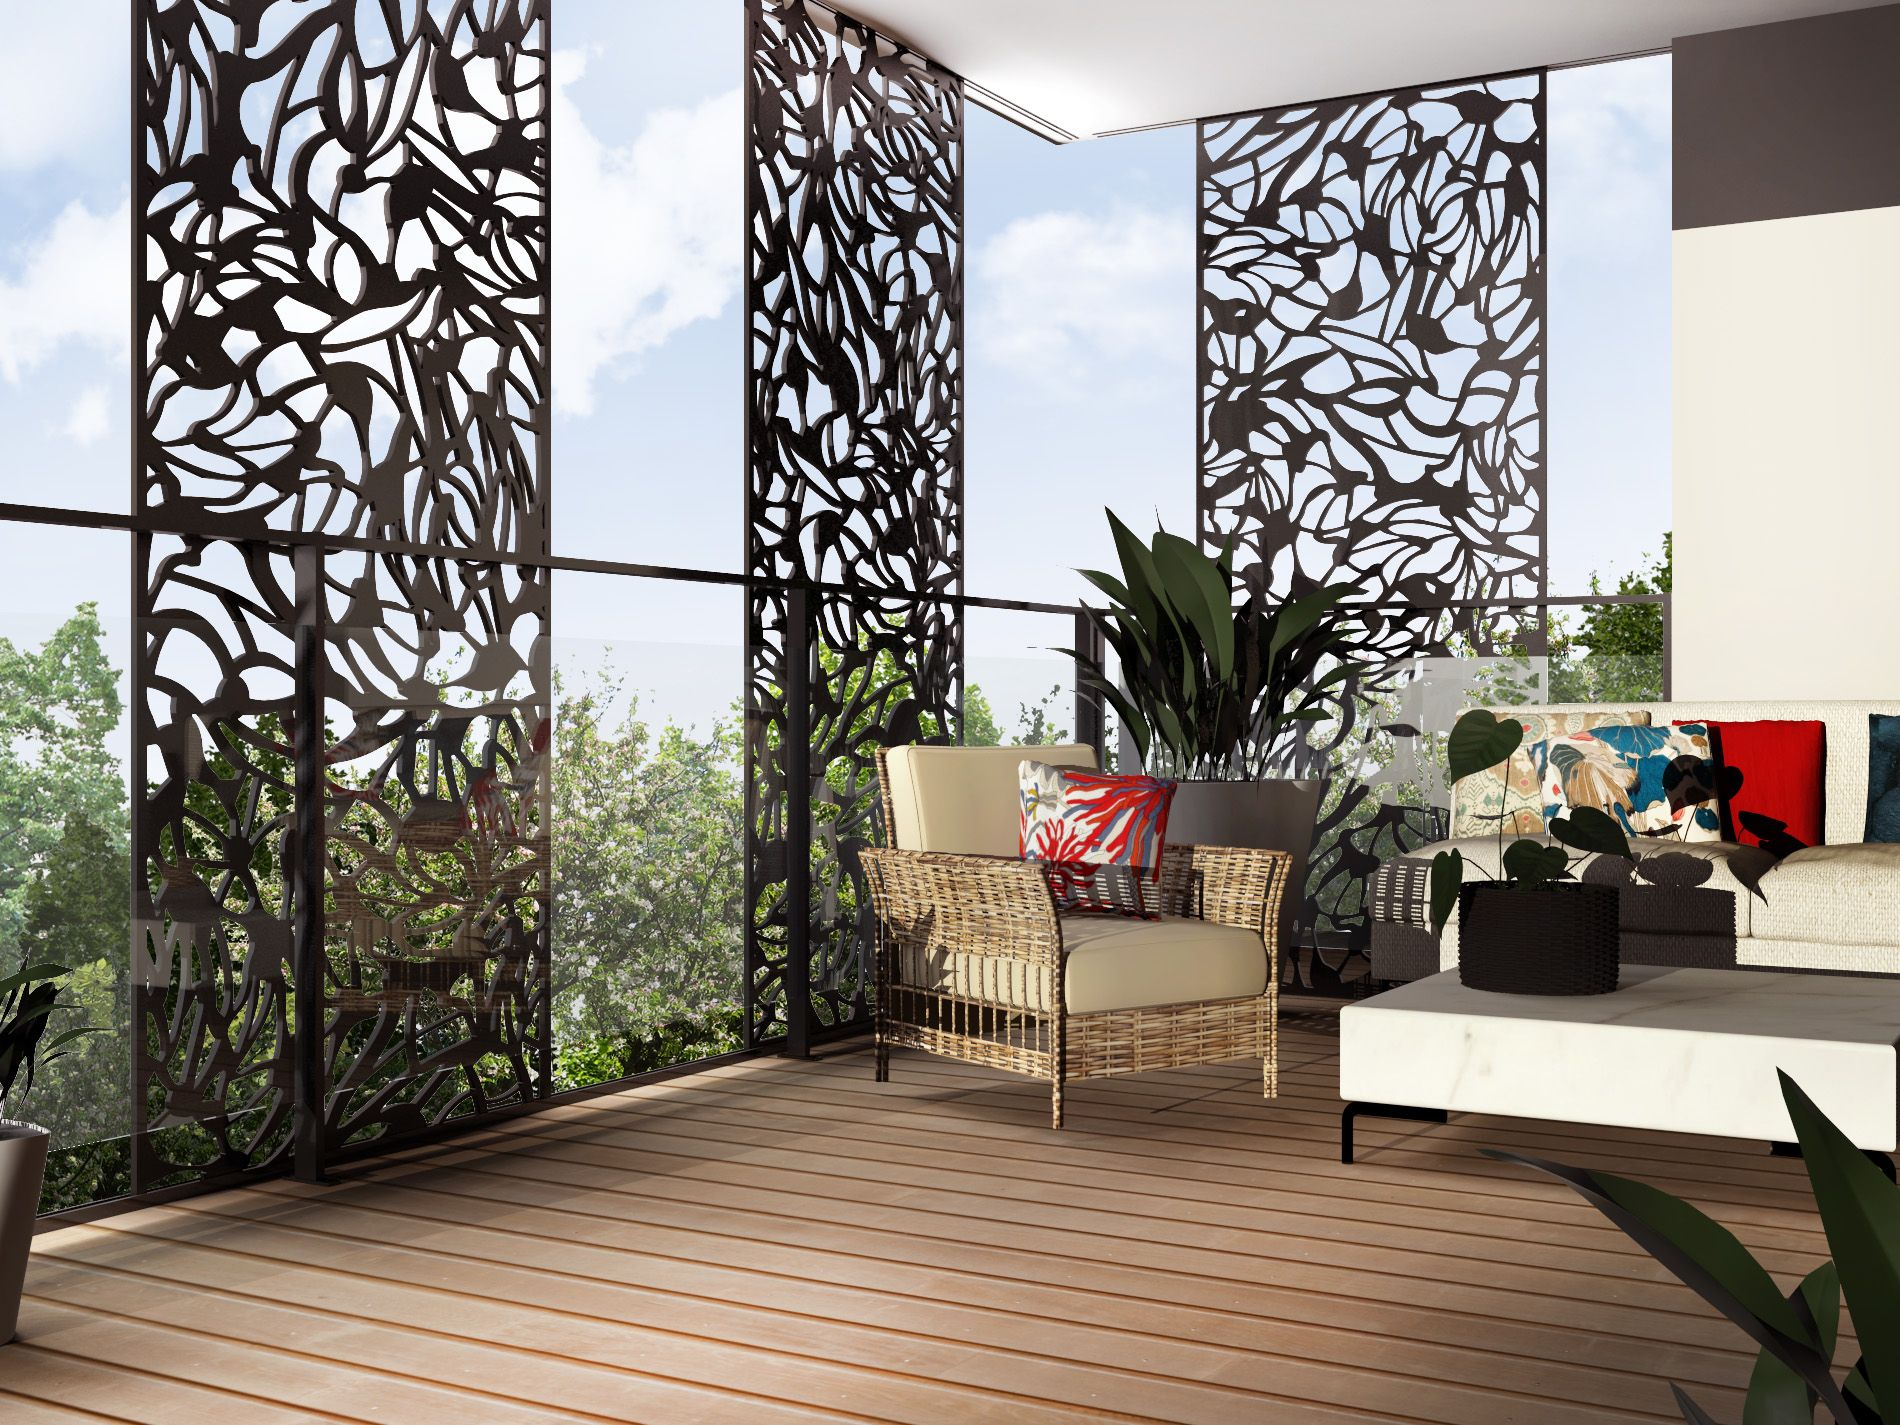 claustra d corative balcon terrasse brise vue. Black Bedroom Furniture Sets. Home Design Ideas